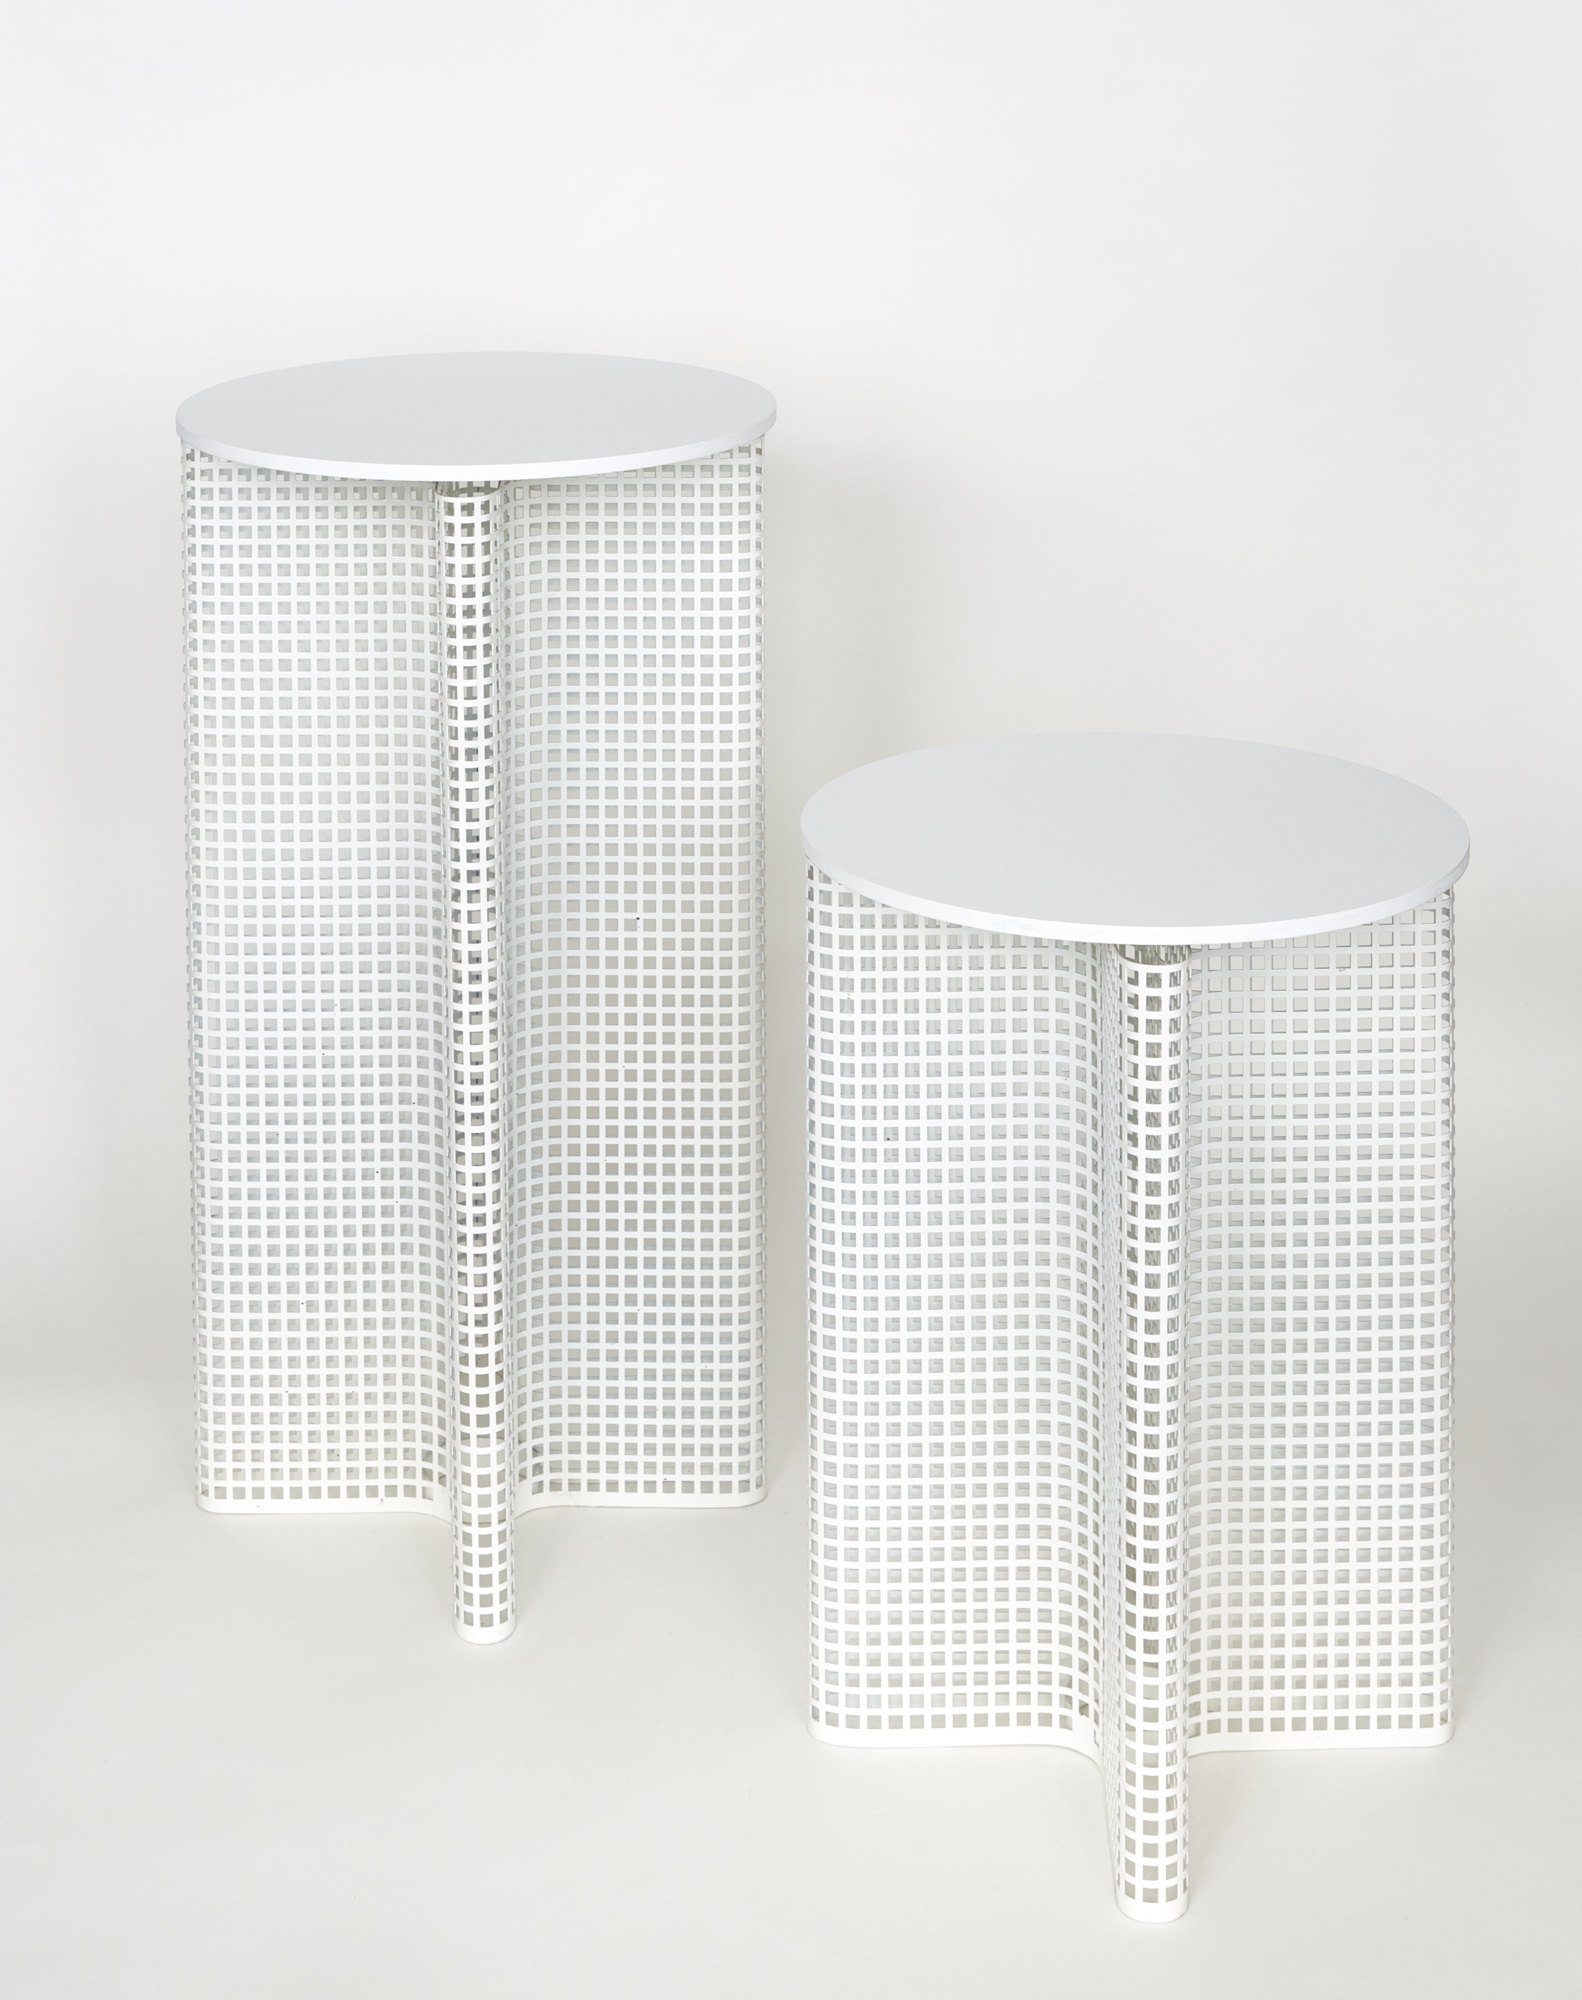 B&D Design Nov 2017 Tables-13-LowRes.jpg